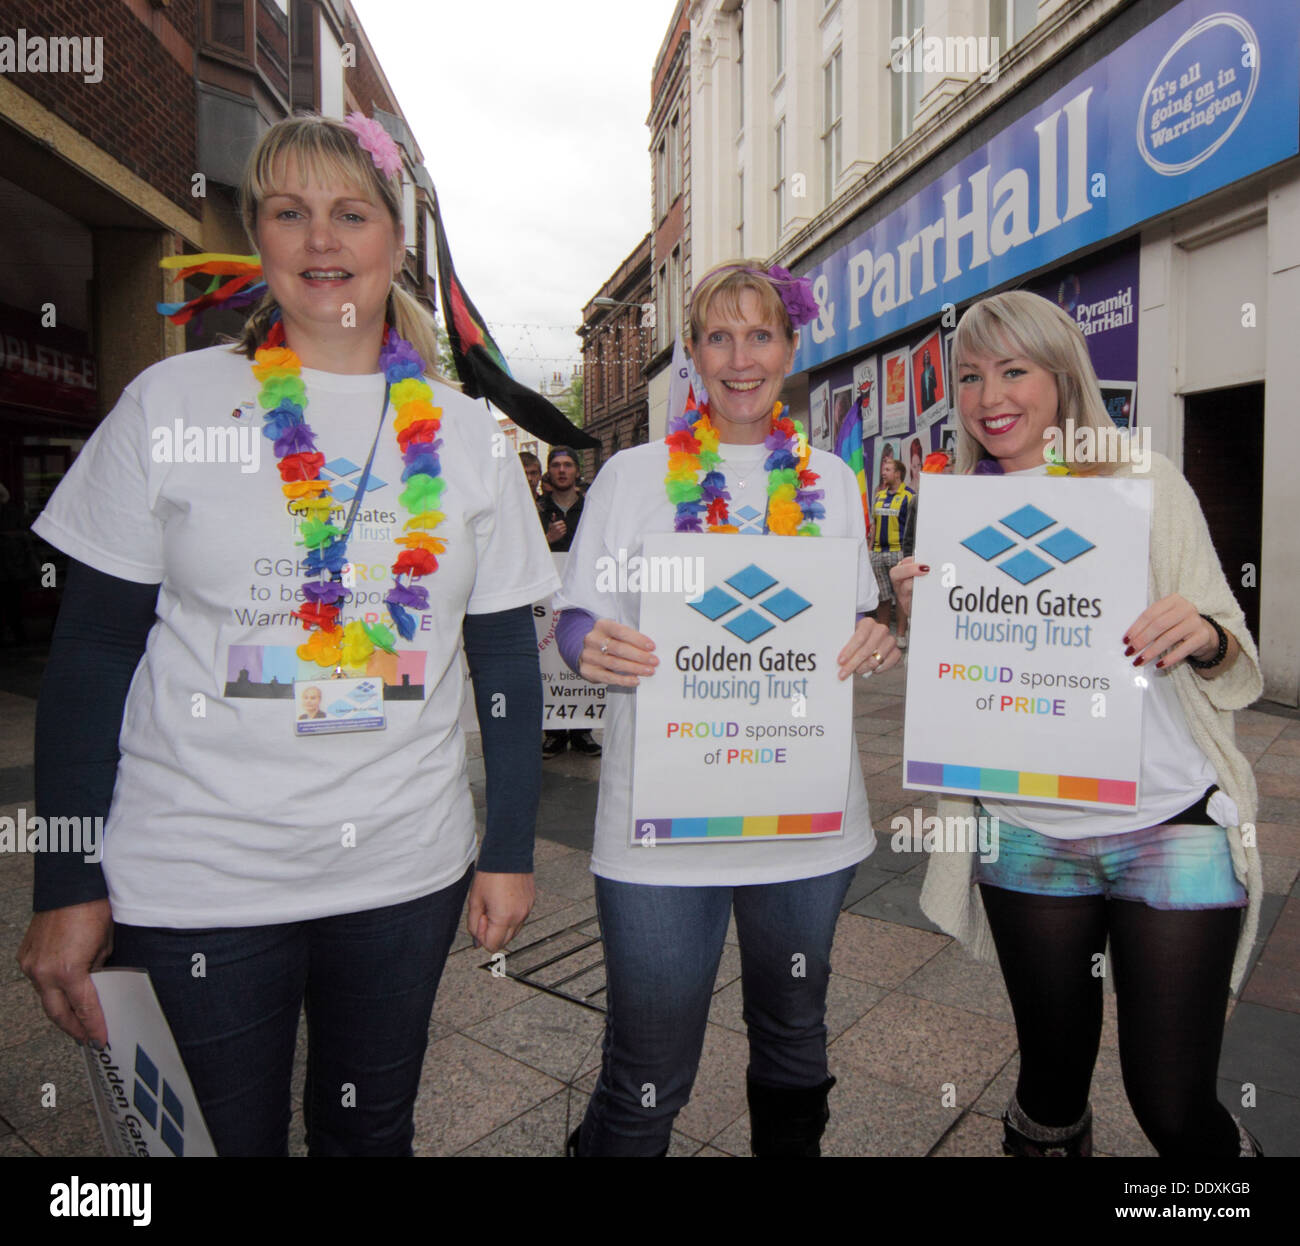 England,WA1,UK,GB,Great,britain,British,gay,lesbian,trans,transgender,LGBT,Bi,Bi-sexual,bisexual,people,men,women,marching,rights,WarringtonPride,march,marches,WBC,borough,council,unitary,local,authority,GGHT,golden,gates,housing,trust,events,celebrating,event,annual,yearly,flag,7th,seventh,gotonysmith,Warington,gayrights,Sep,Sept,Stonewall,town,demonstrate,demonstrators,demonstrator,Liberation,Front,GLF,gayness,gayboy,boy,boys,girls,girl,population,world,worldpride,Canal,St,street,rugby,player,players,team,cup,rugbyworldcup,07/09/2013,09/07/2013,Rylands,Palmyra,Sq,square,Bond,Bridge,WarringtonLGBT,LGBTWarrington,members,volunteers,stigma,services,service,HIV,aids,sexuality,sex,lgbtwarrington.co.uk,WA1,1JL,WA11JL,GGHT,Golden,Gates,HT,ladies,housing,Trust,workers,community,Buy Pictures of,Buy Images Of